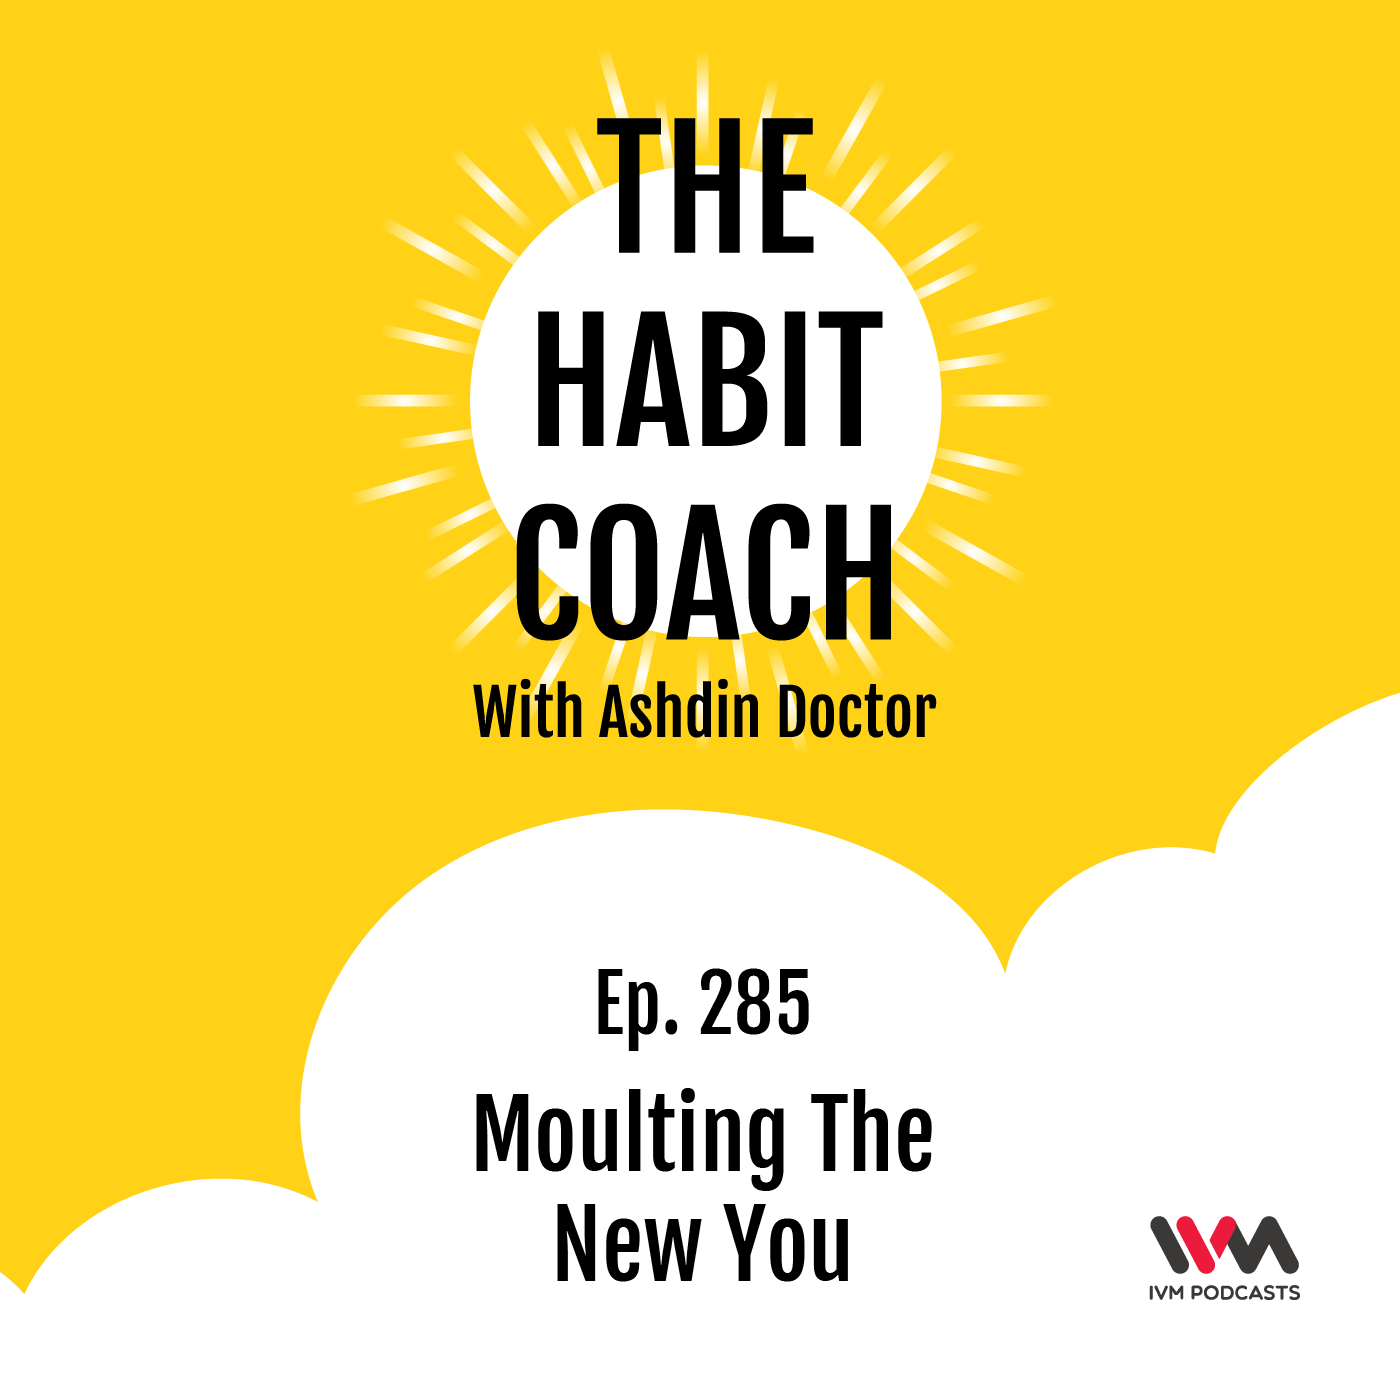 Ep. 285: Moulting The New You